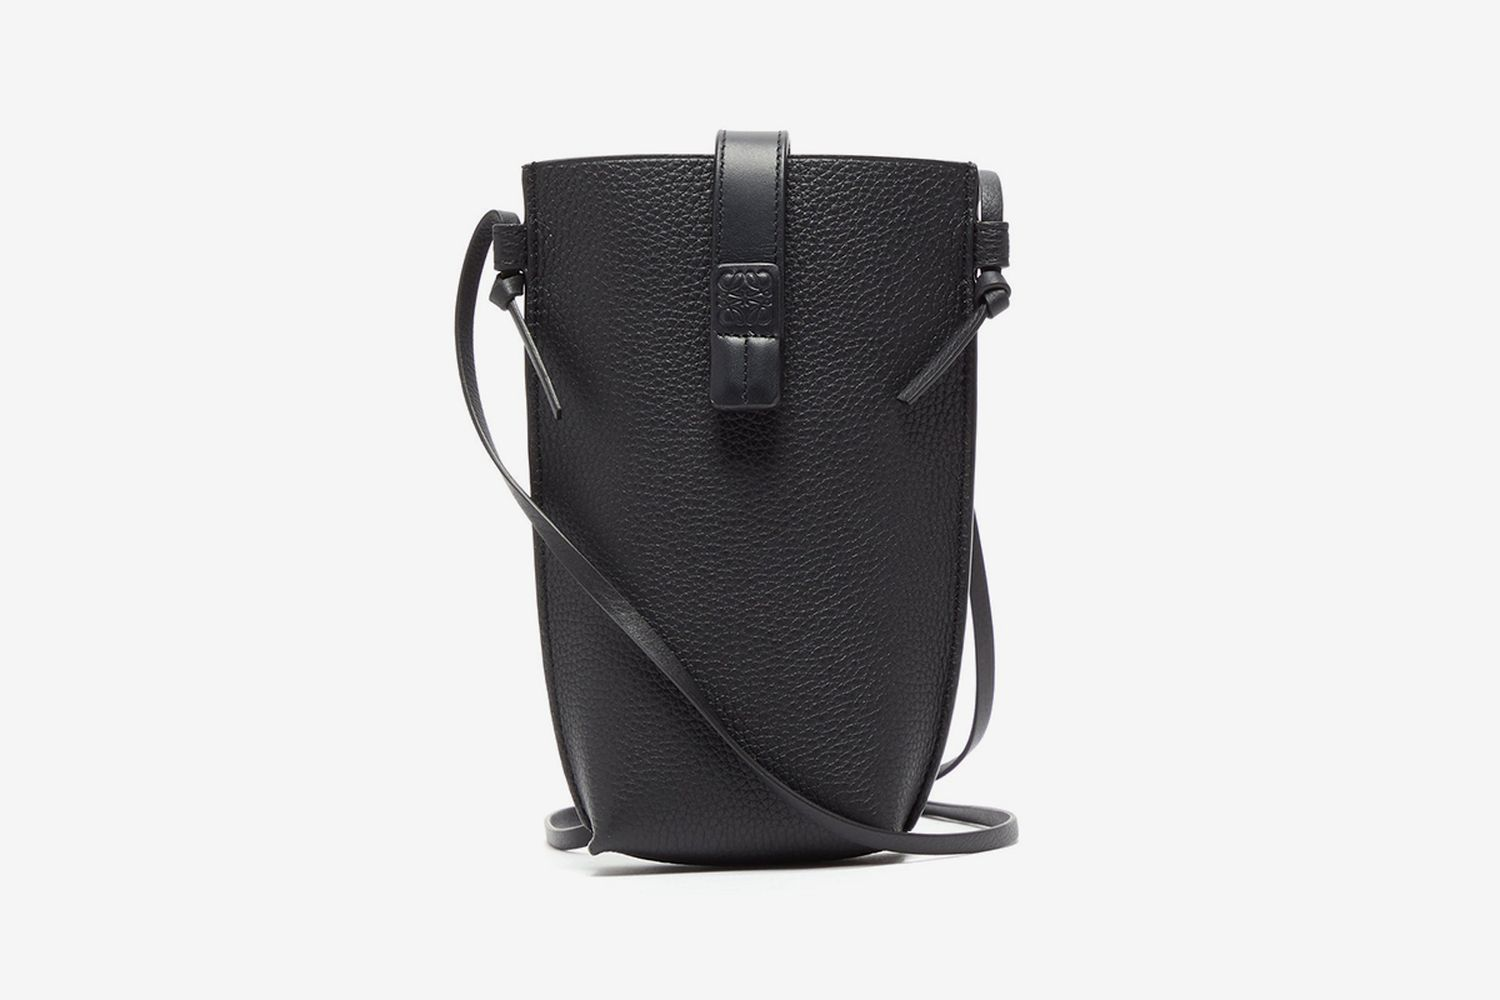 Pocket Grained-Leather Cross-body Bag